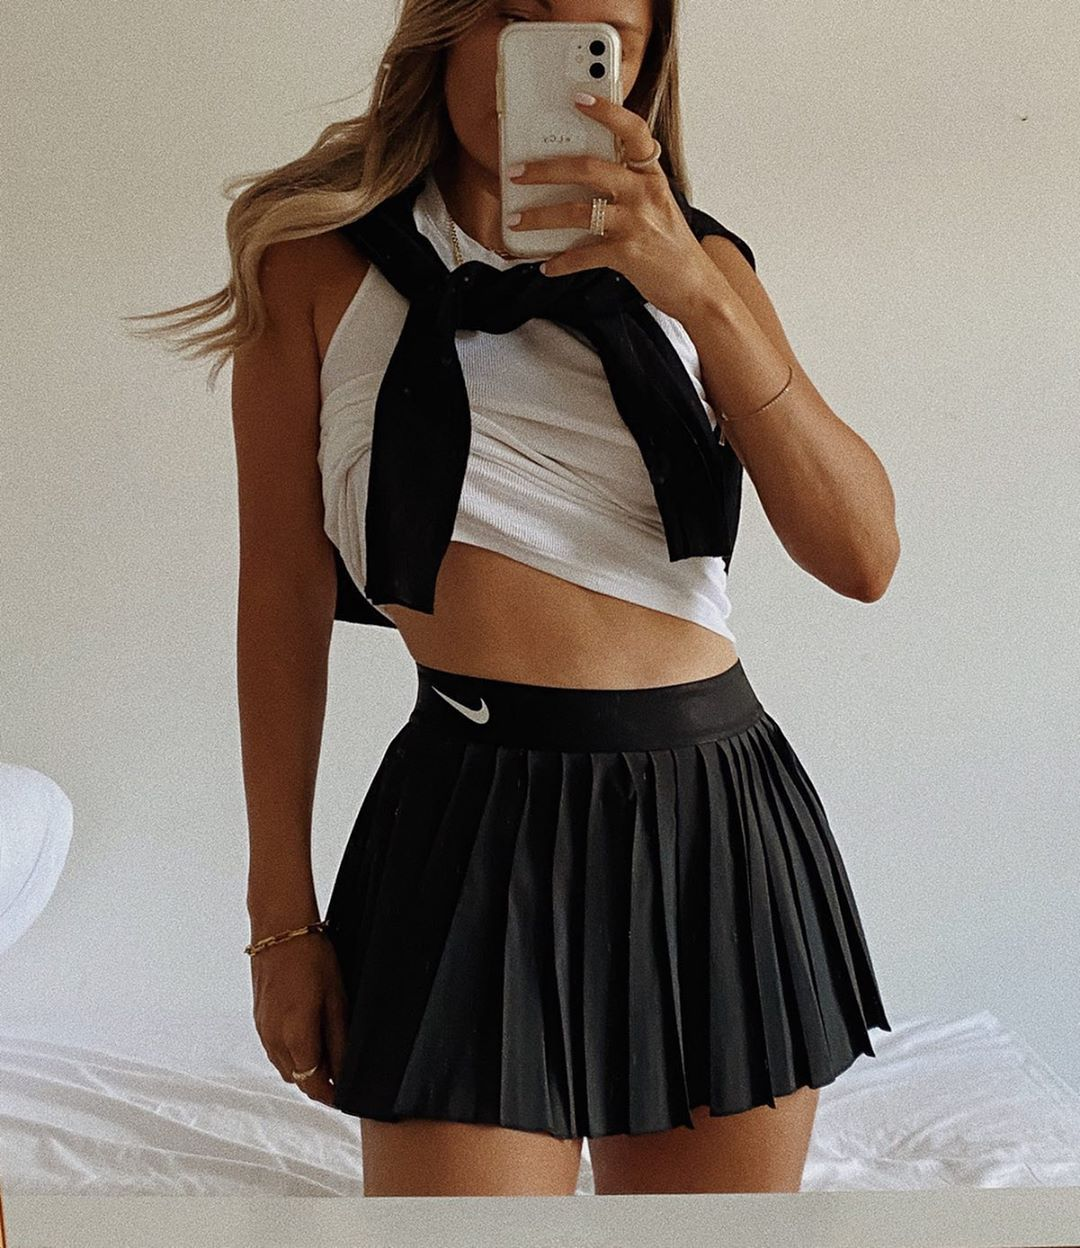 Lauren Crowe On Instagram Dark Side Niketennis Nike Sporty Sportygirl Tennis Tennislife In 2020 Fashion Inspo Outfits Tennis Skirt Outfit Trendy Outfits